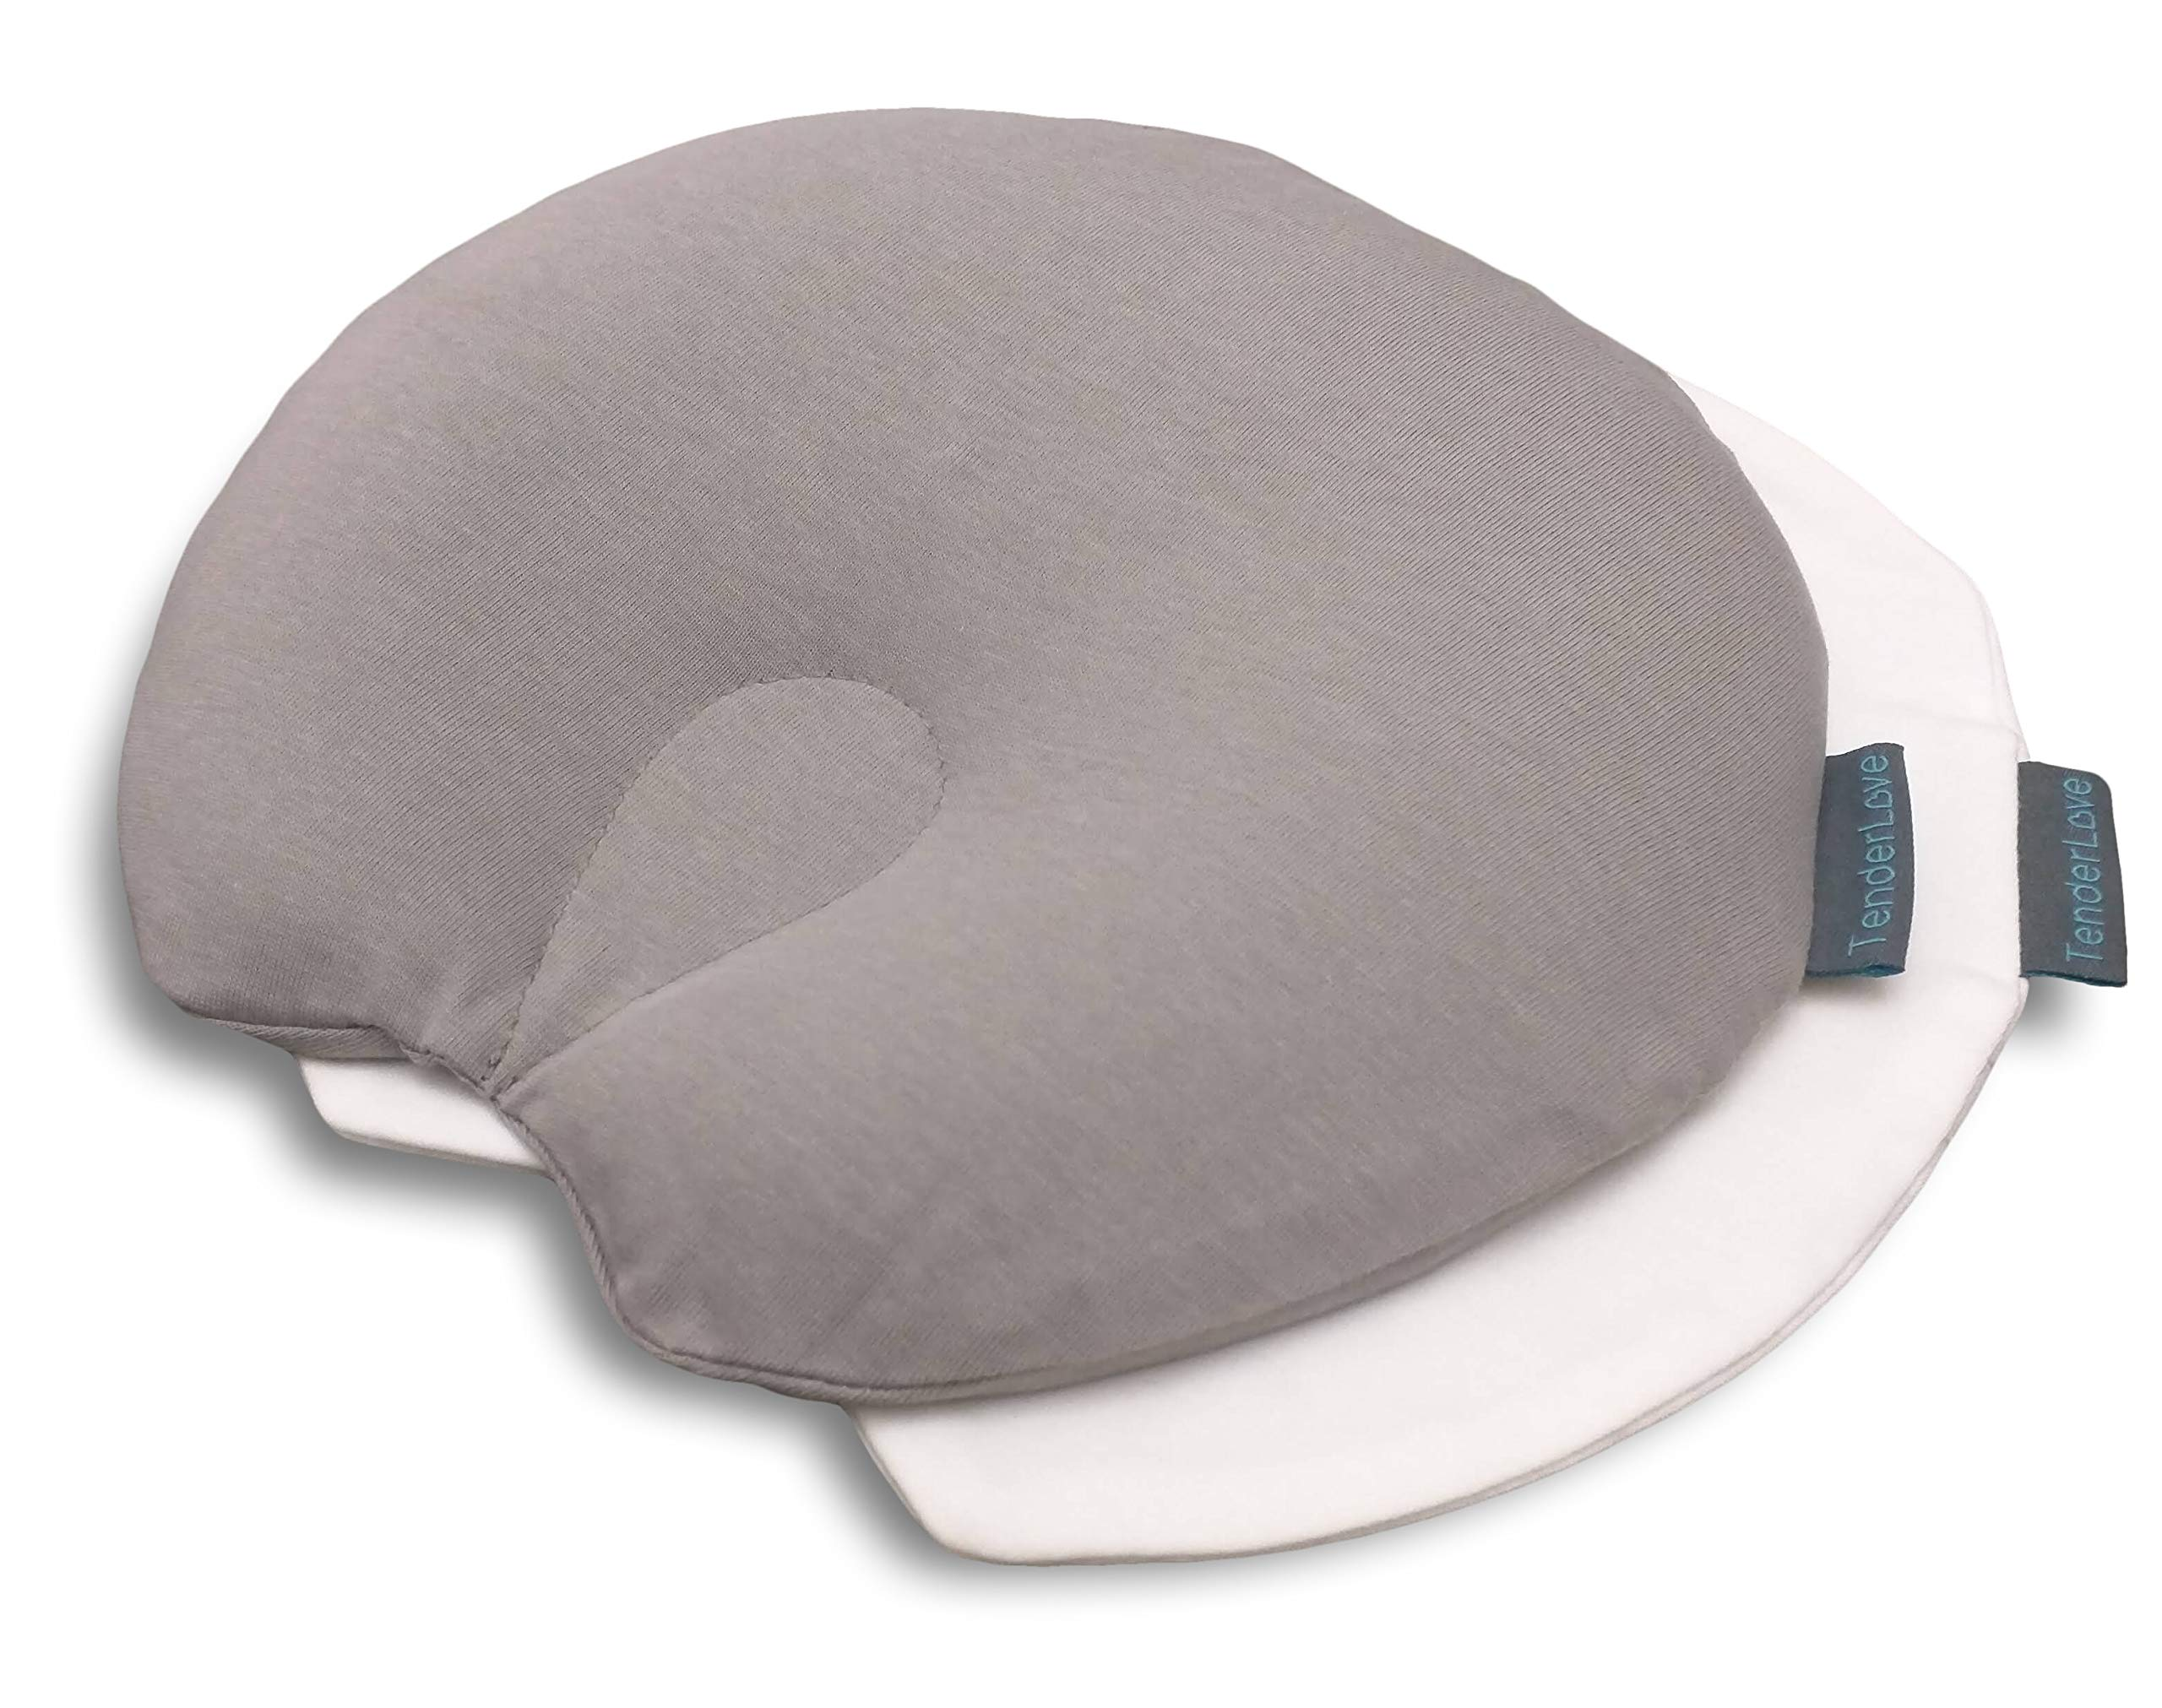 Tender Love Premium Head Shaping Baby Pillow - Memory Foam Baby Pillow - Reduce Flat Head Syndrome in Babies and Toddlers – Infant Pillow Properly Supports Head and Neck - Includes 2 Pillow Cases